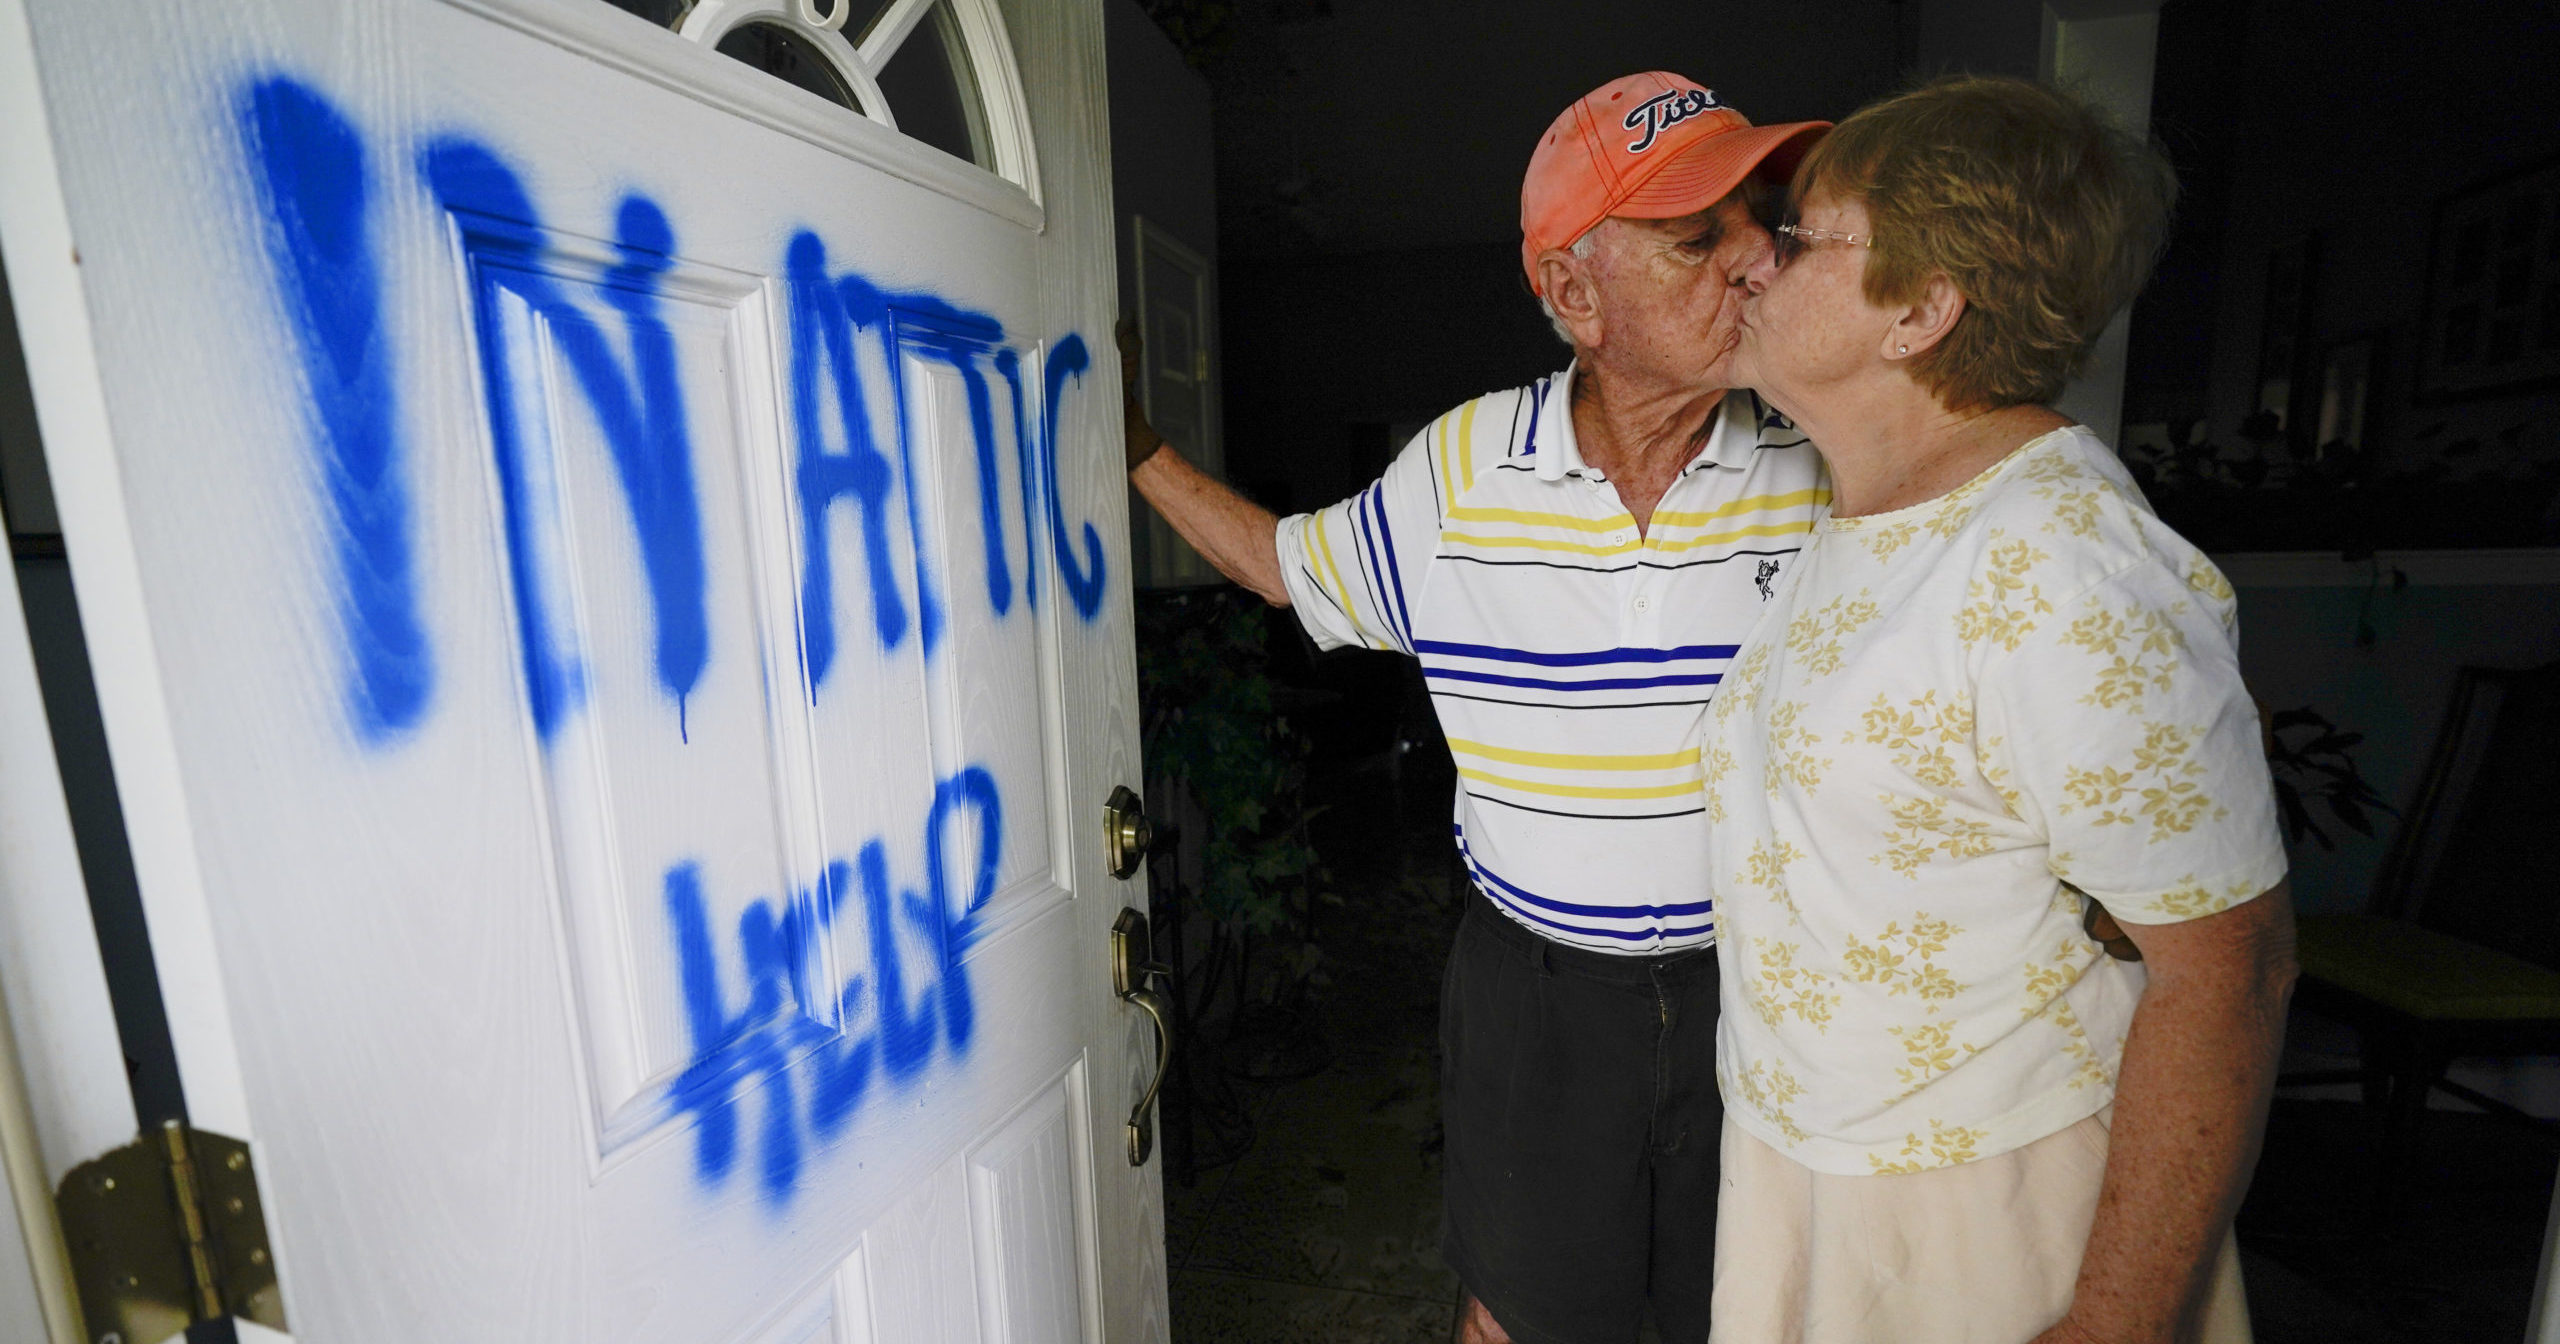 Jack and Elaine Hulgan were rescued after being trapped in their Pensacola, Florida, home by flooding during Hurricane Sally on Sept. 16, 2020.